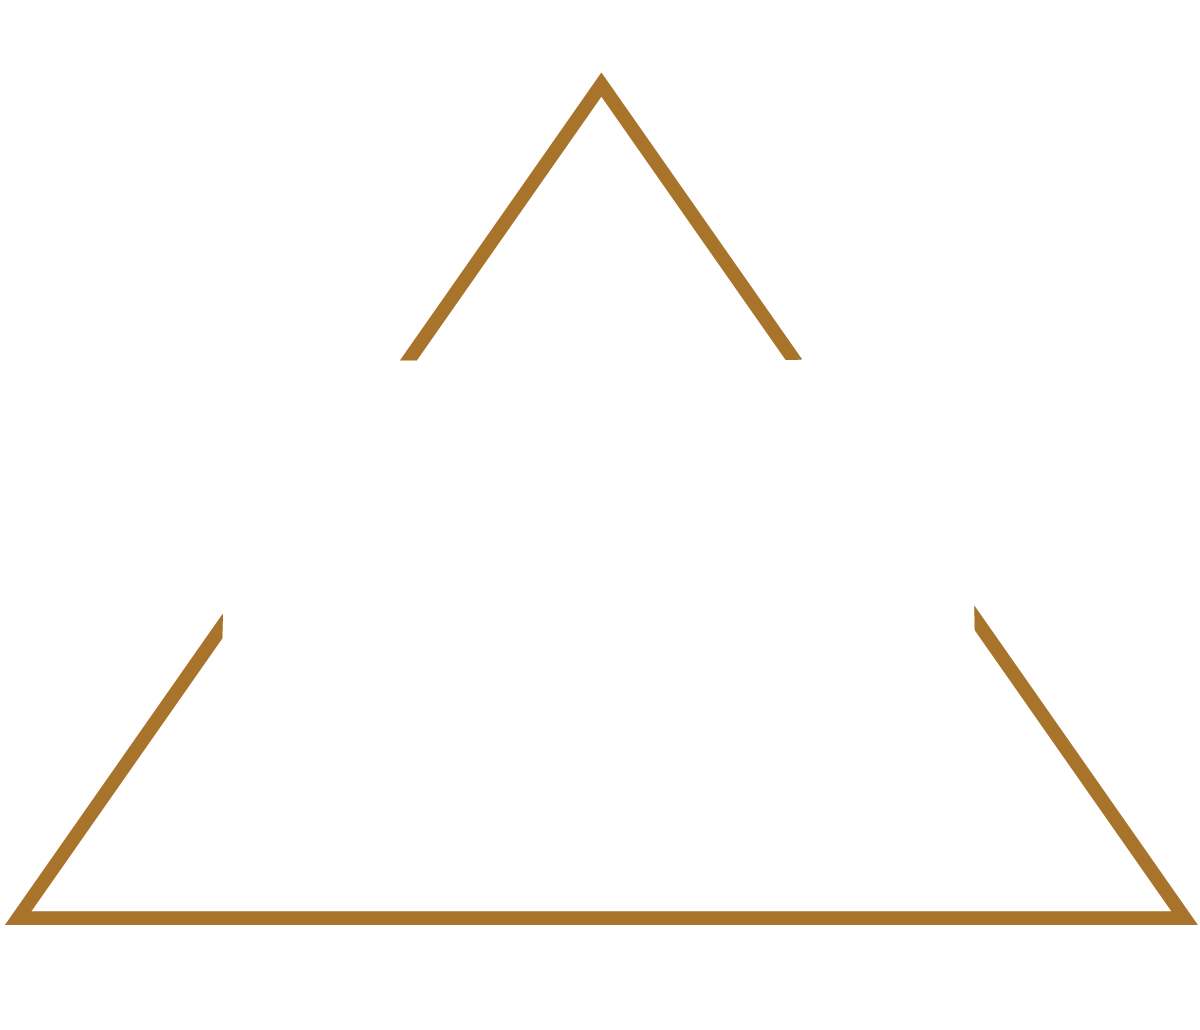 Lauren Louise Photography